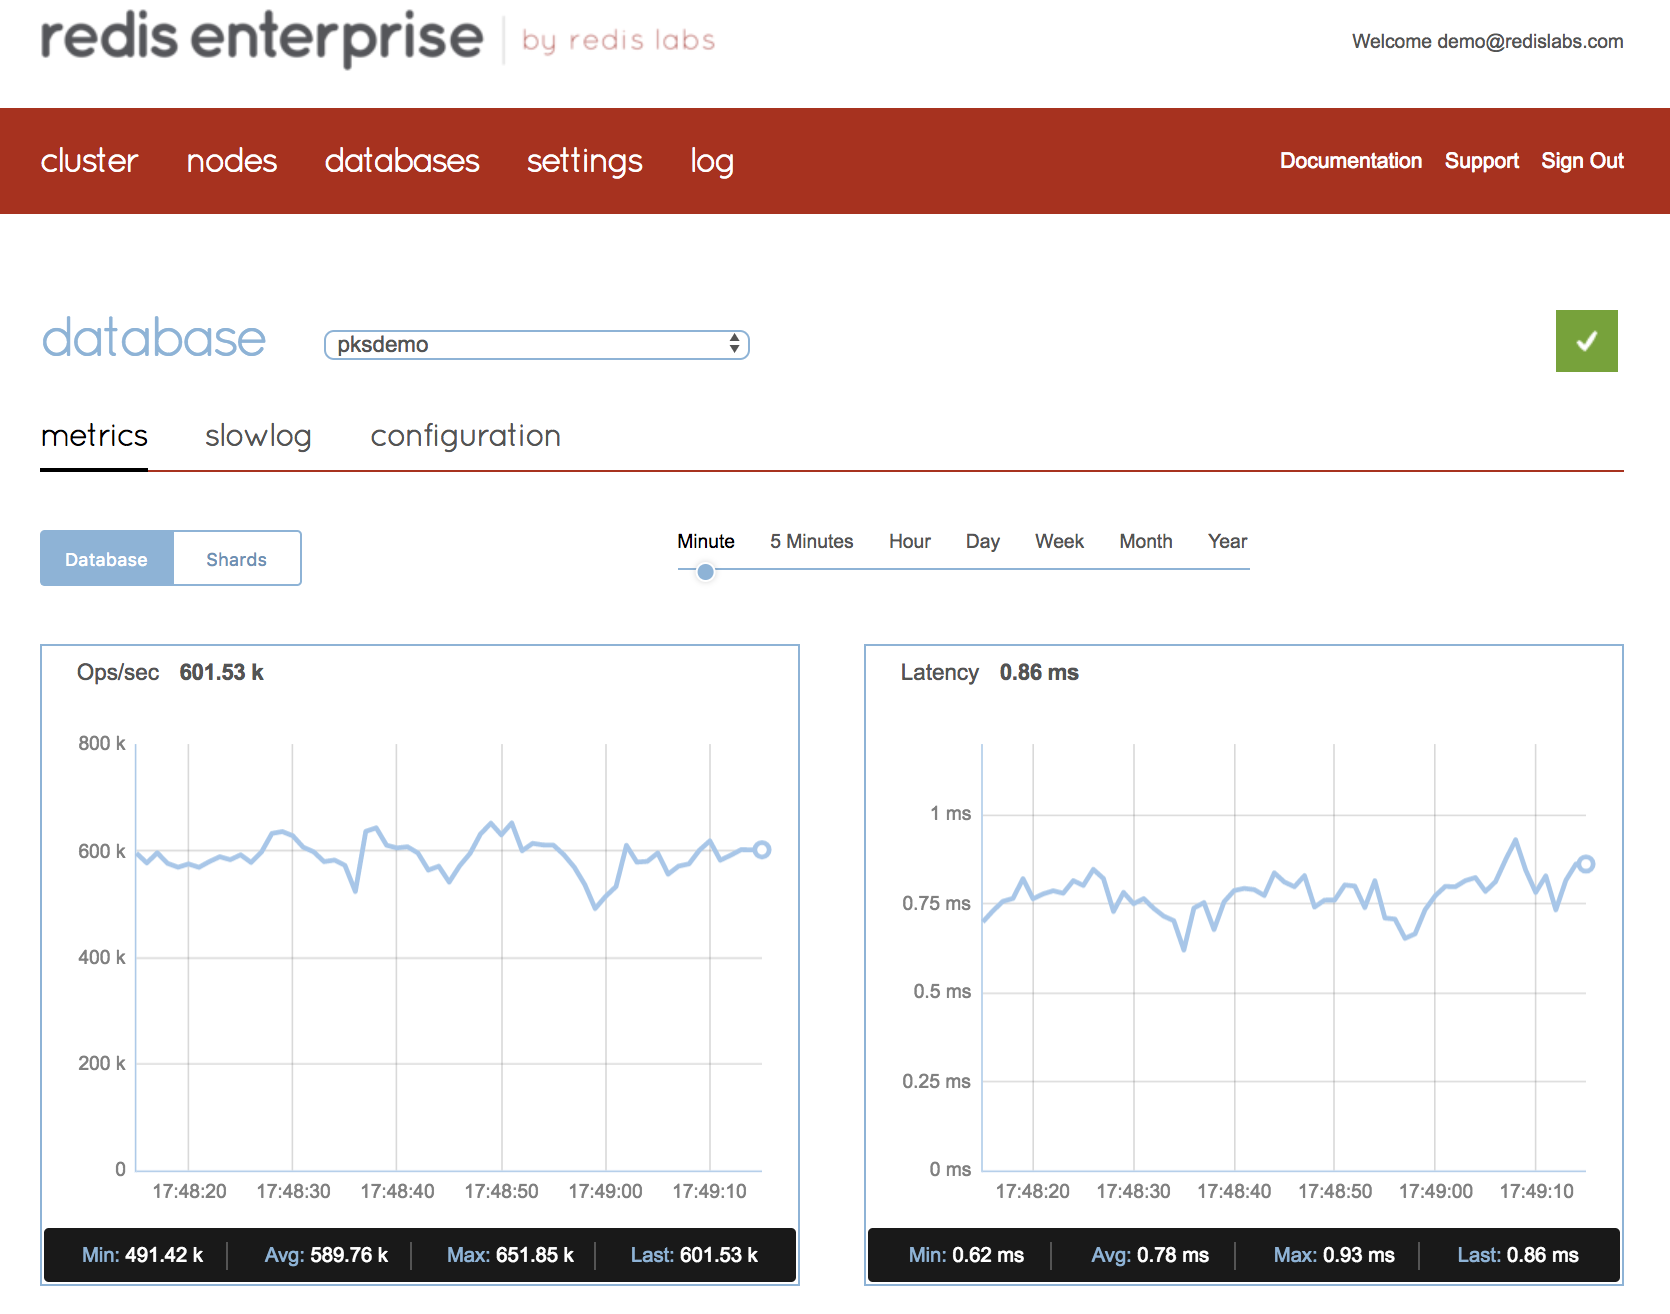 Redis Enterprise can easily reach over 0.5M ops/sec using just one of the cluster nodes over Kubernetes infrastructure, while keeping latency under sub-millisecond.